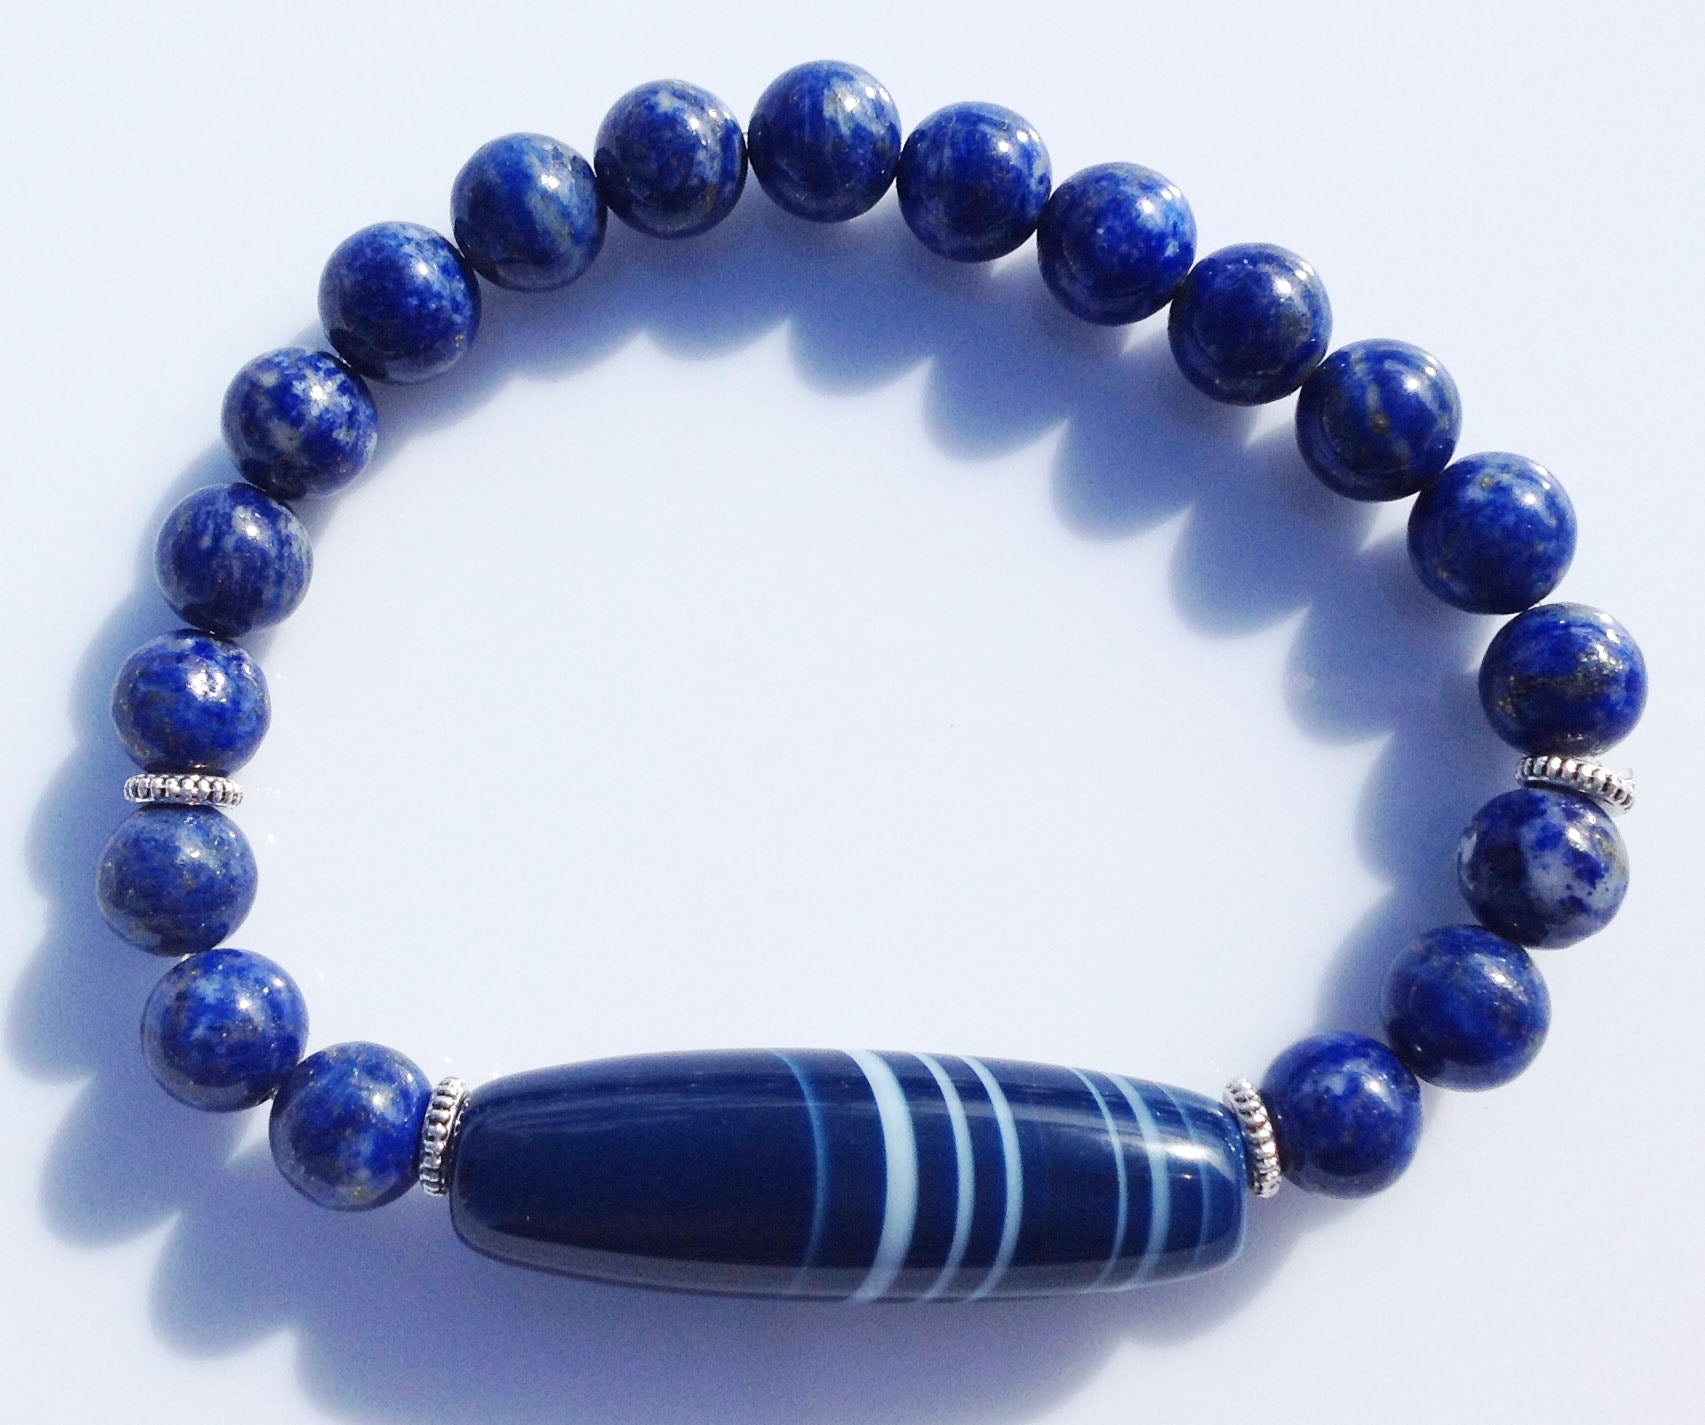 Ancient Dark Blue Dzi Bead Collection Lapis Lauzli Stone Yoga Meditation Wrist Mala Bracelet Third Eye Chakra Focus Healing Energy Reiki